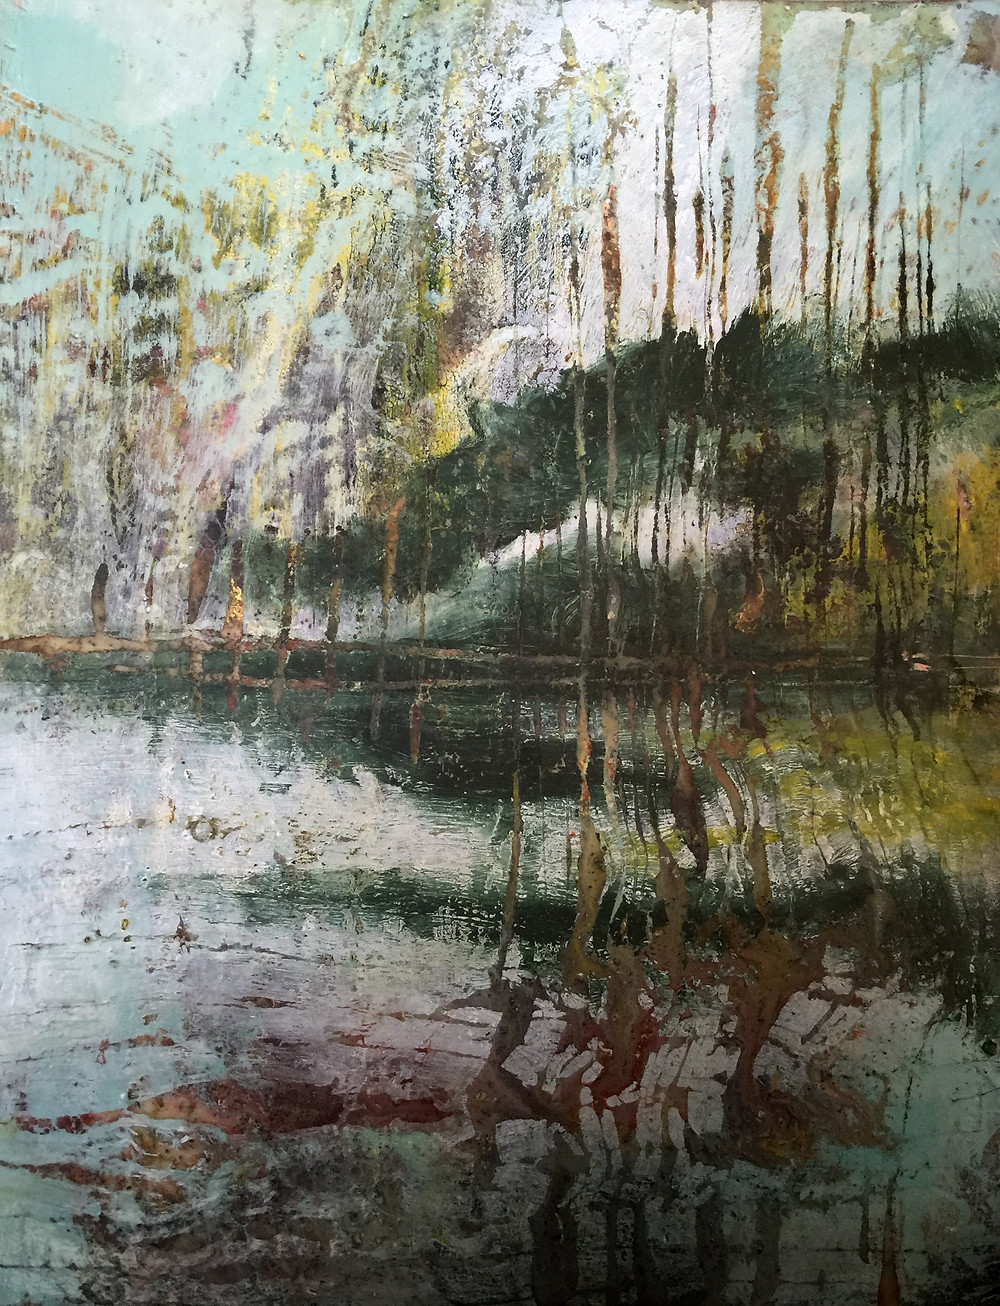 Encaustic artwork painted using hot tools and hot wax.  The image is of a mirage over a lake